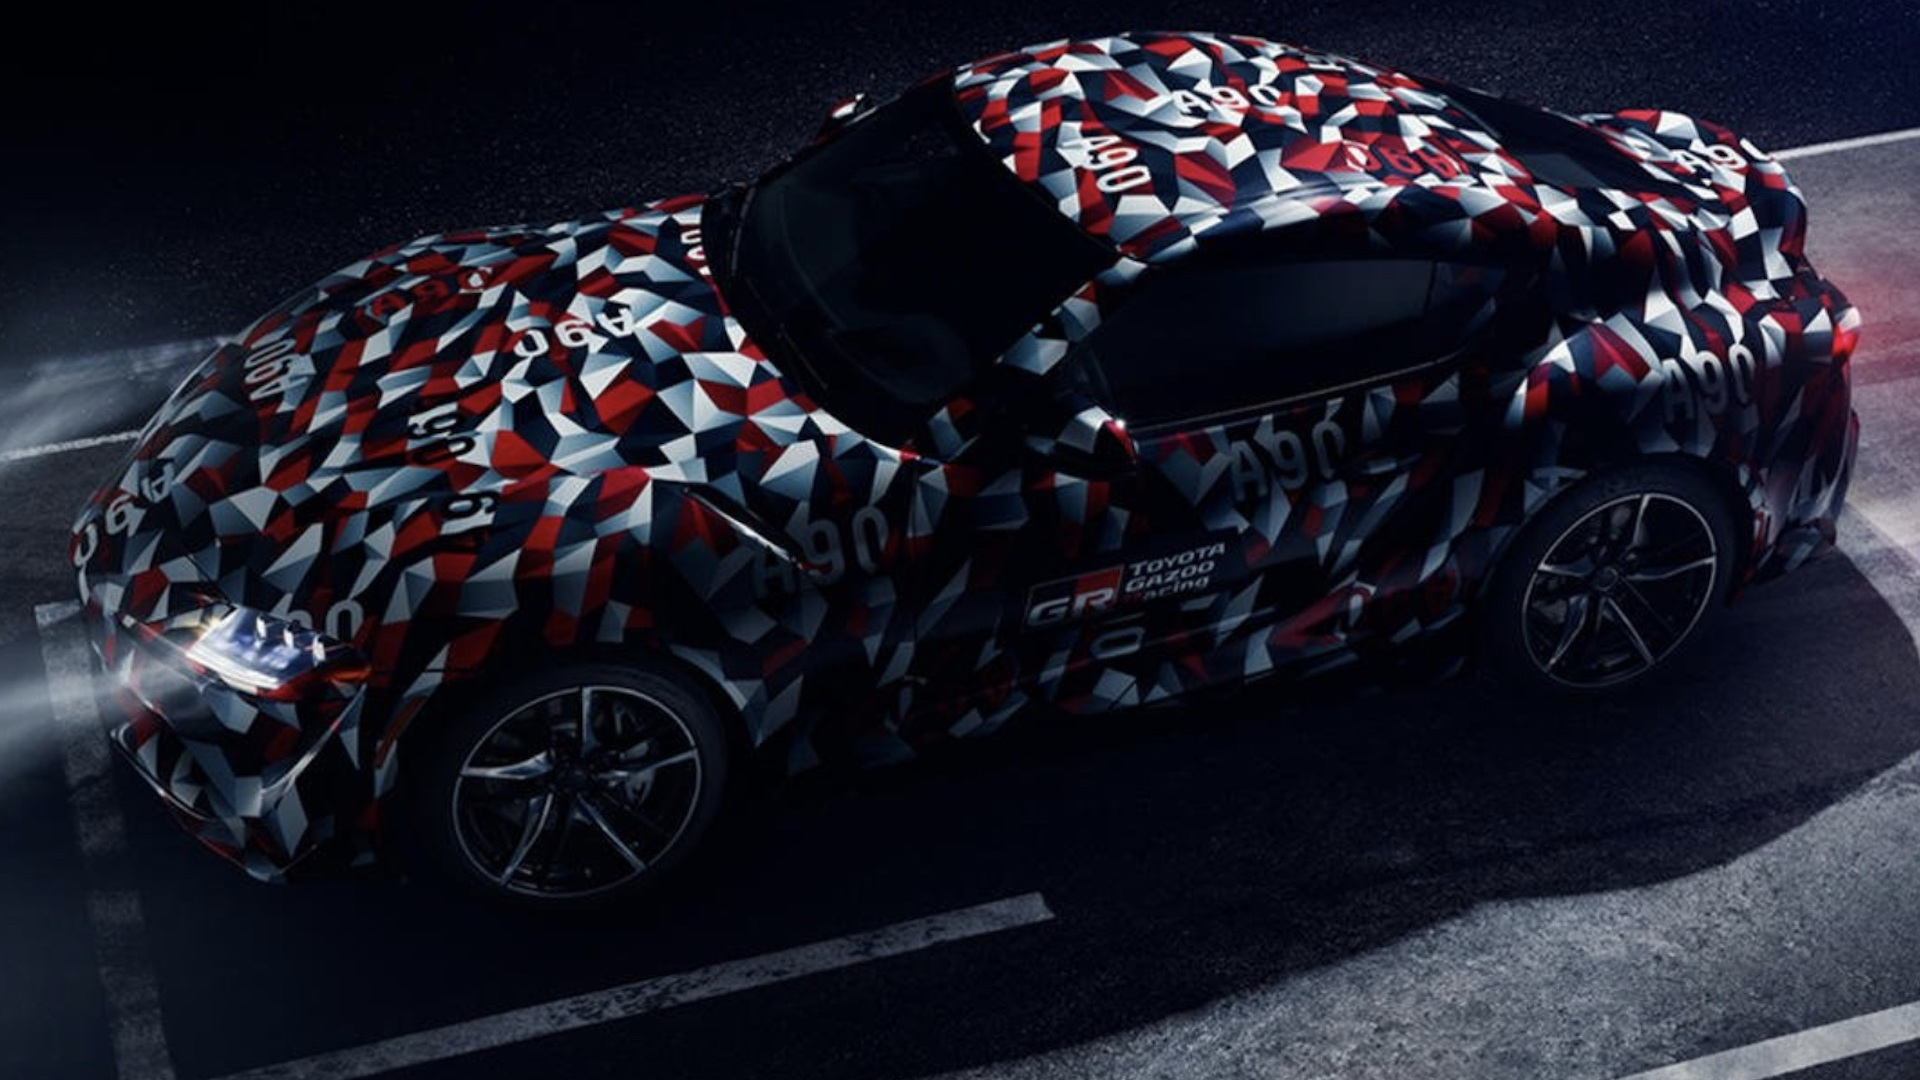 Toyota Supra teased for Goodwood Festival of Speed